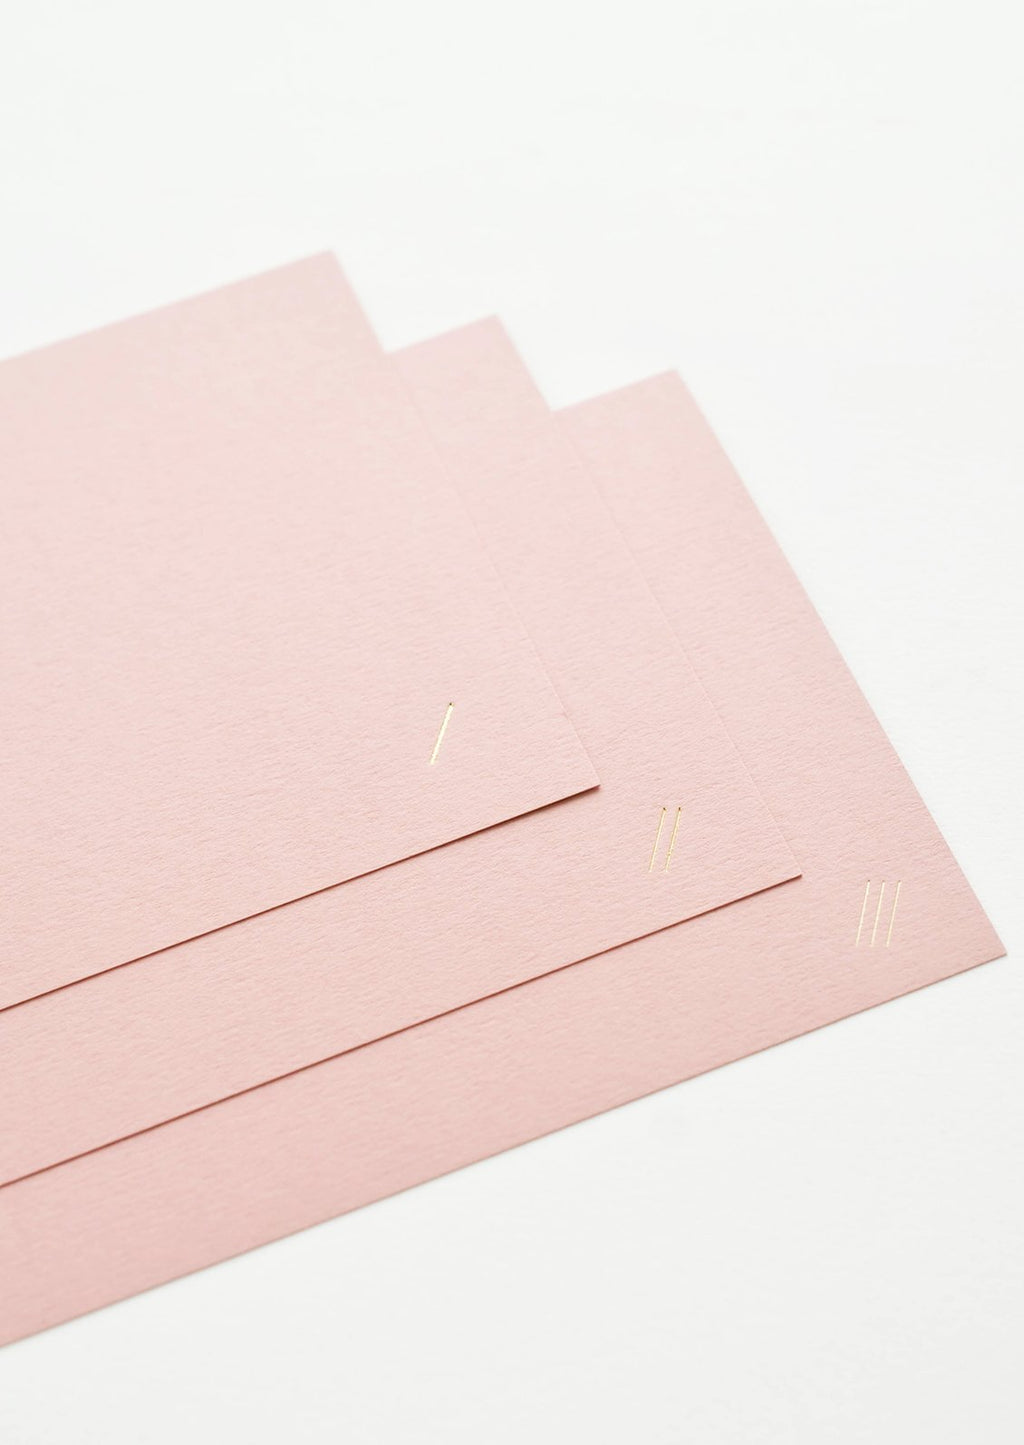 2: Three plain pink greeting cards.